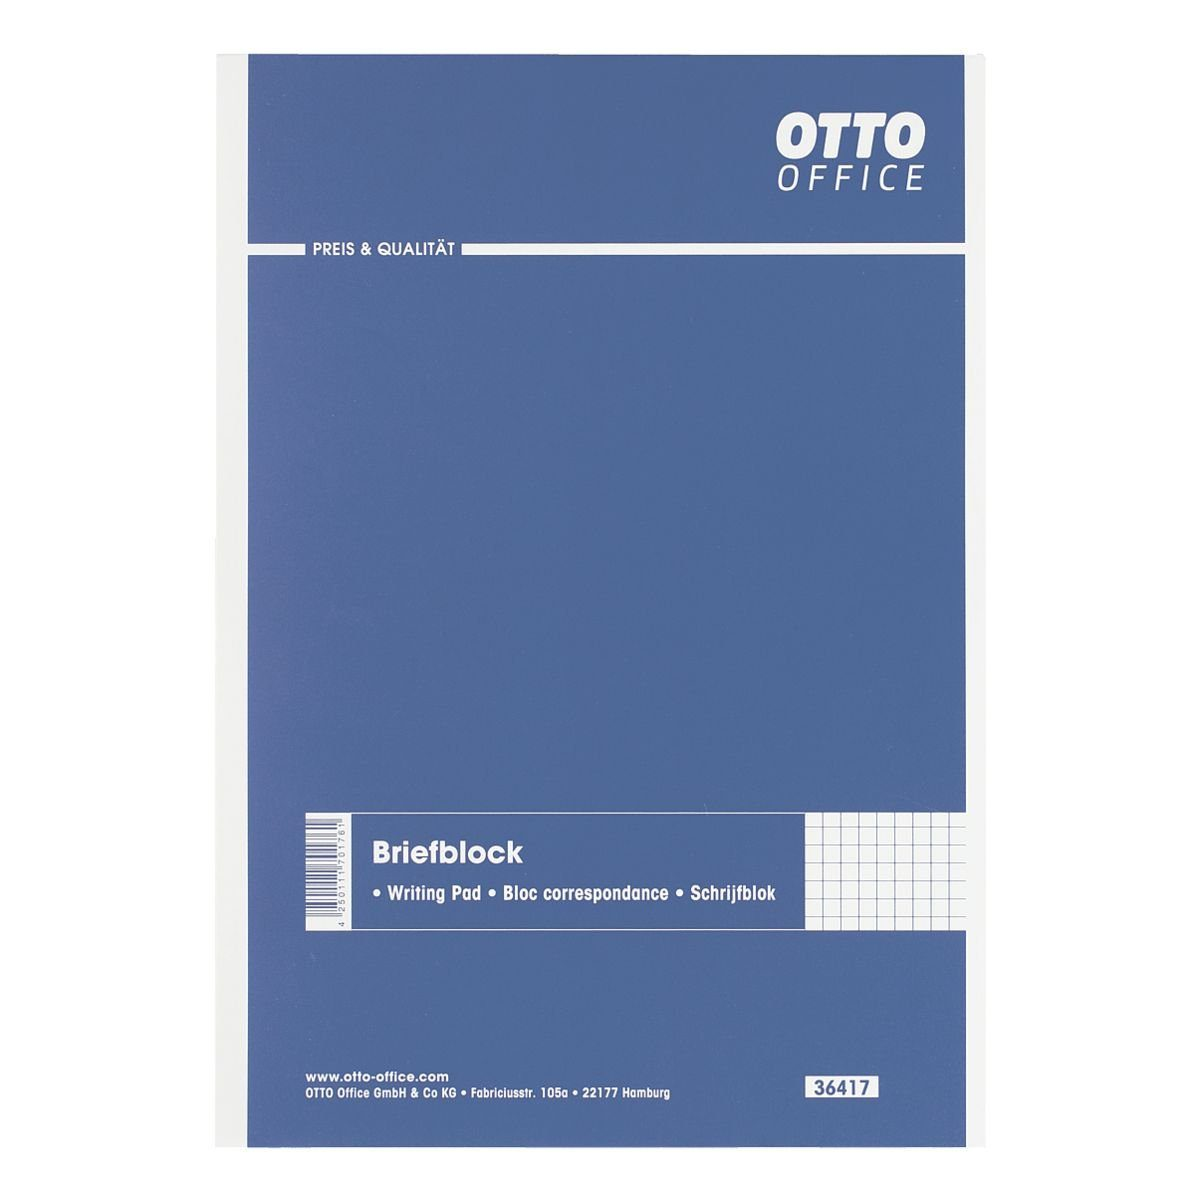 OTTO Office Standard Briefblock